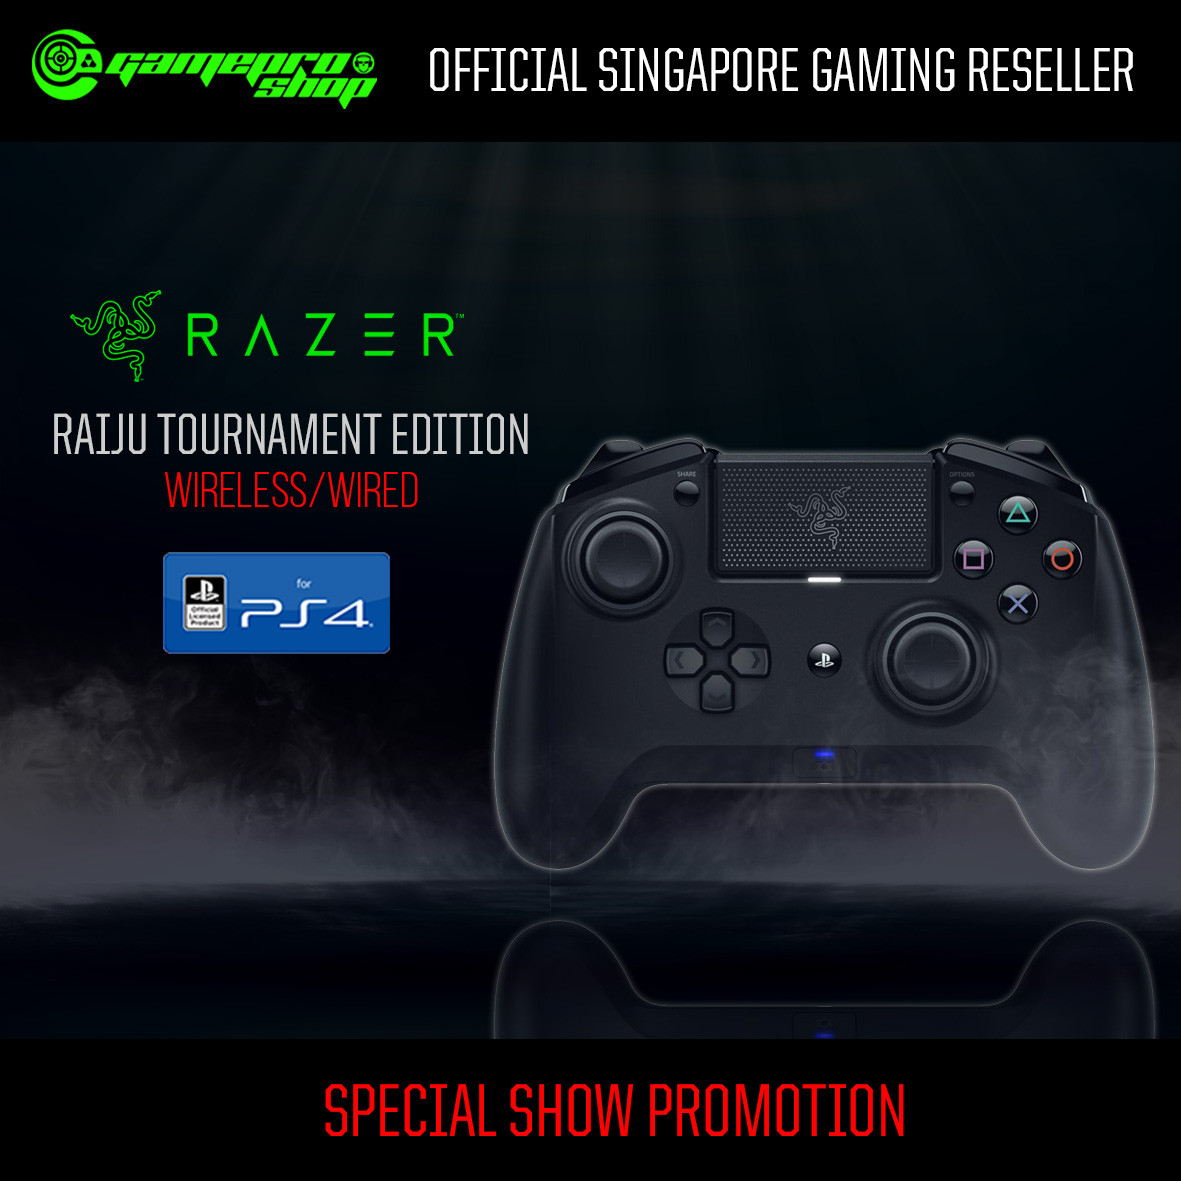 Razer Raiju Tournament Edition Wireless/Wired Gaming Controller for PS4  (RZ06-02610100-R3A1)